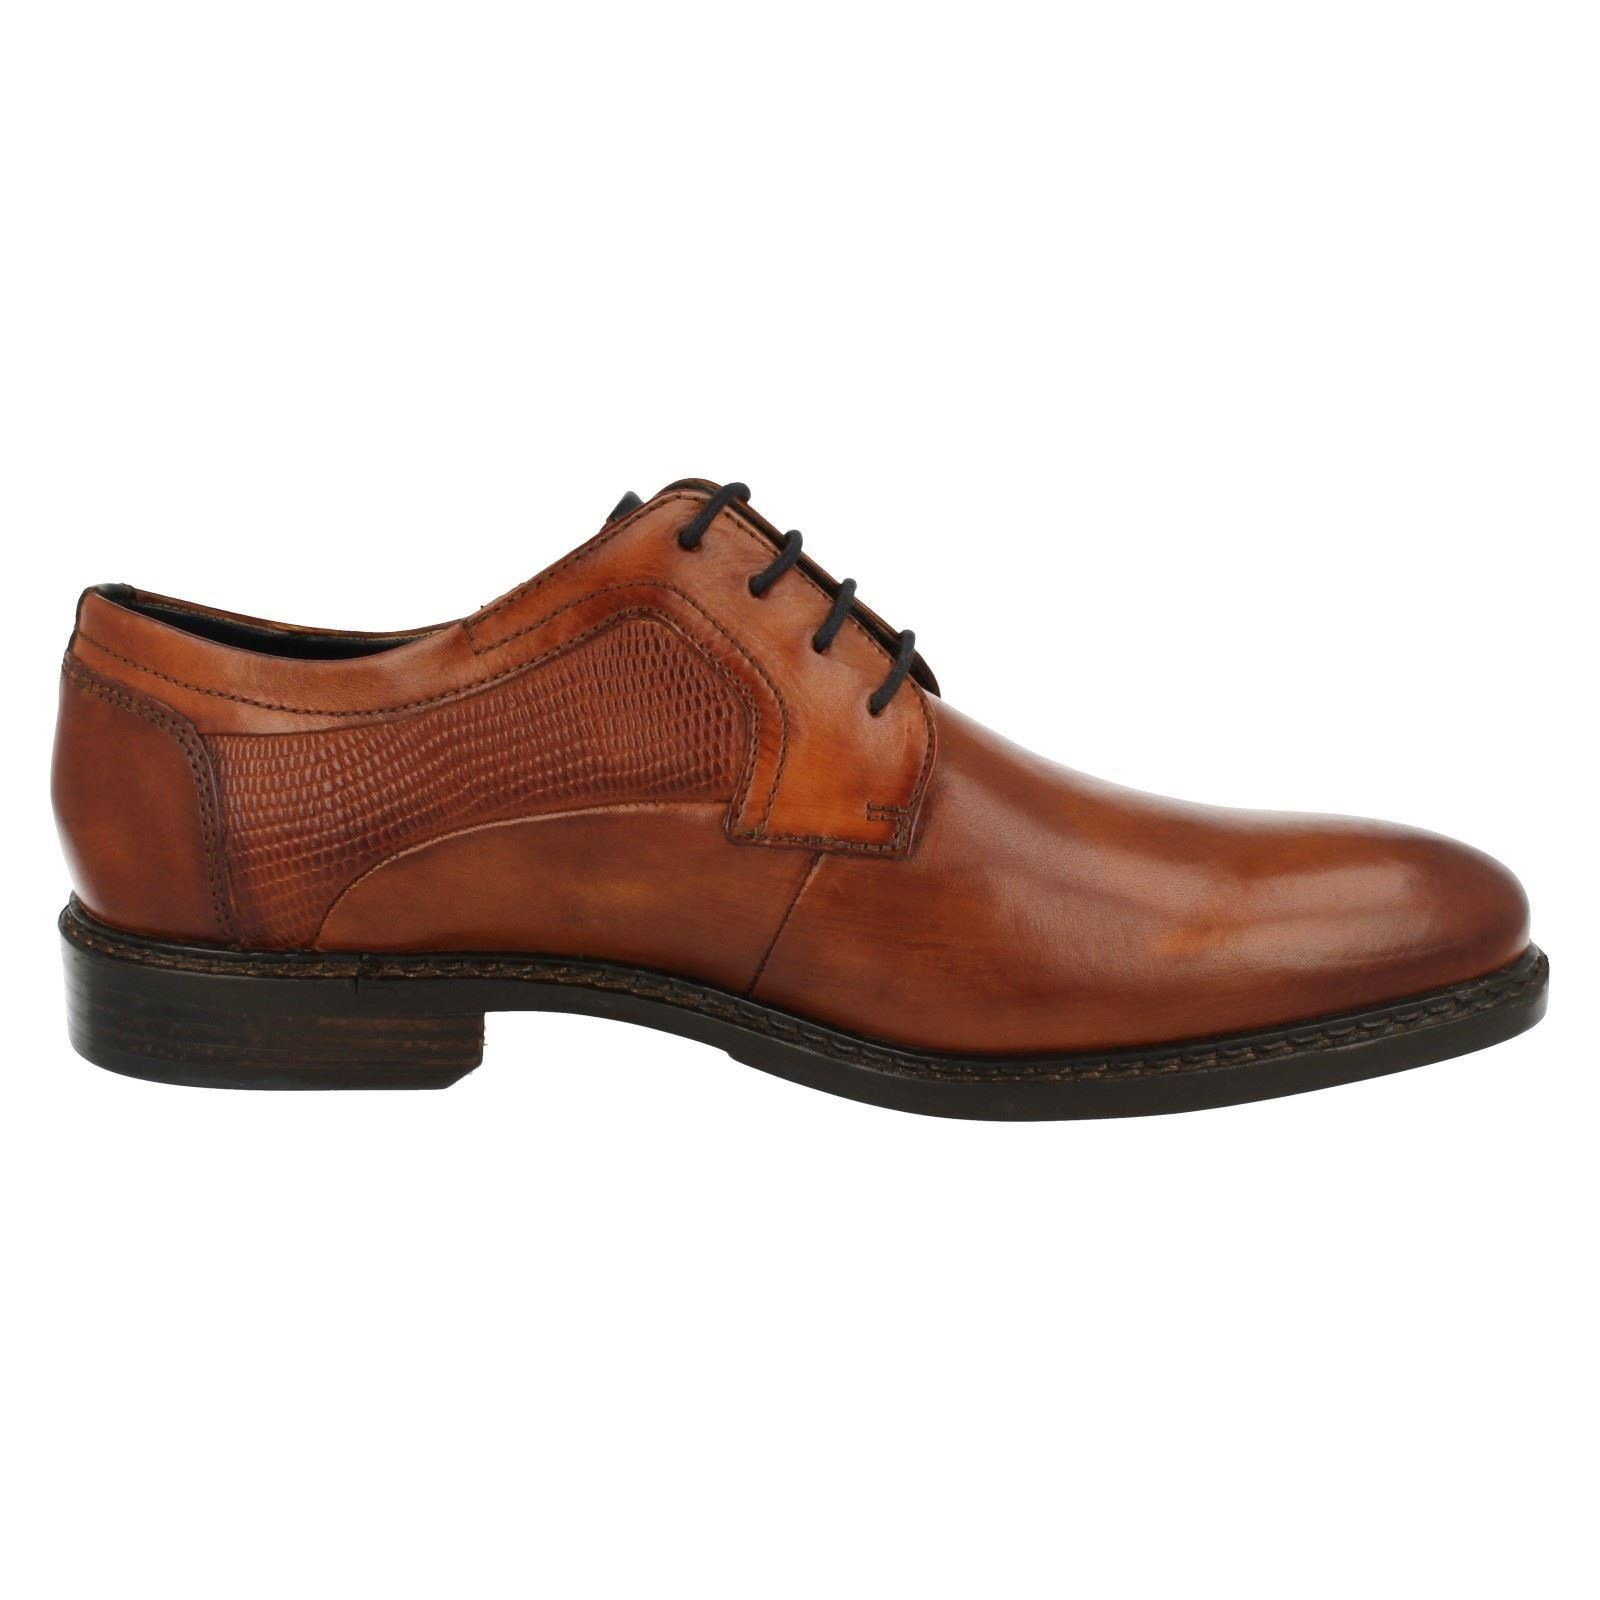 Men's Shoes Bugatti Bene U9008 Mens Cognac Leather Shoes 32a